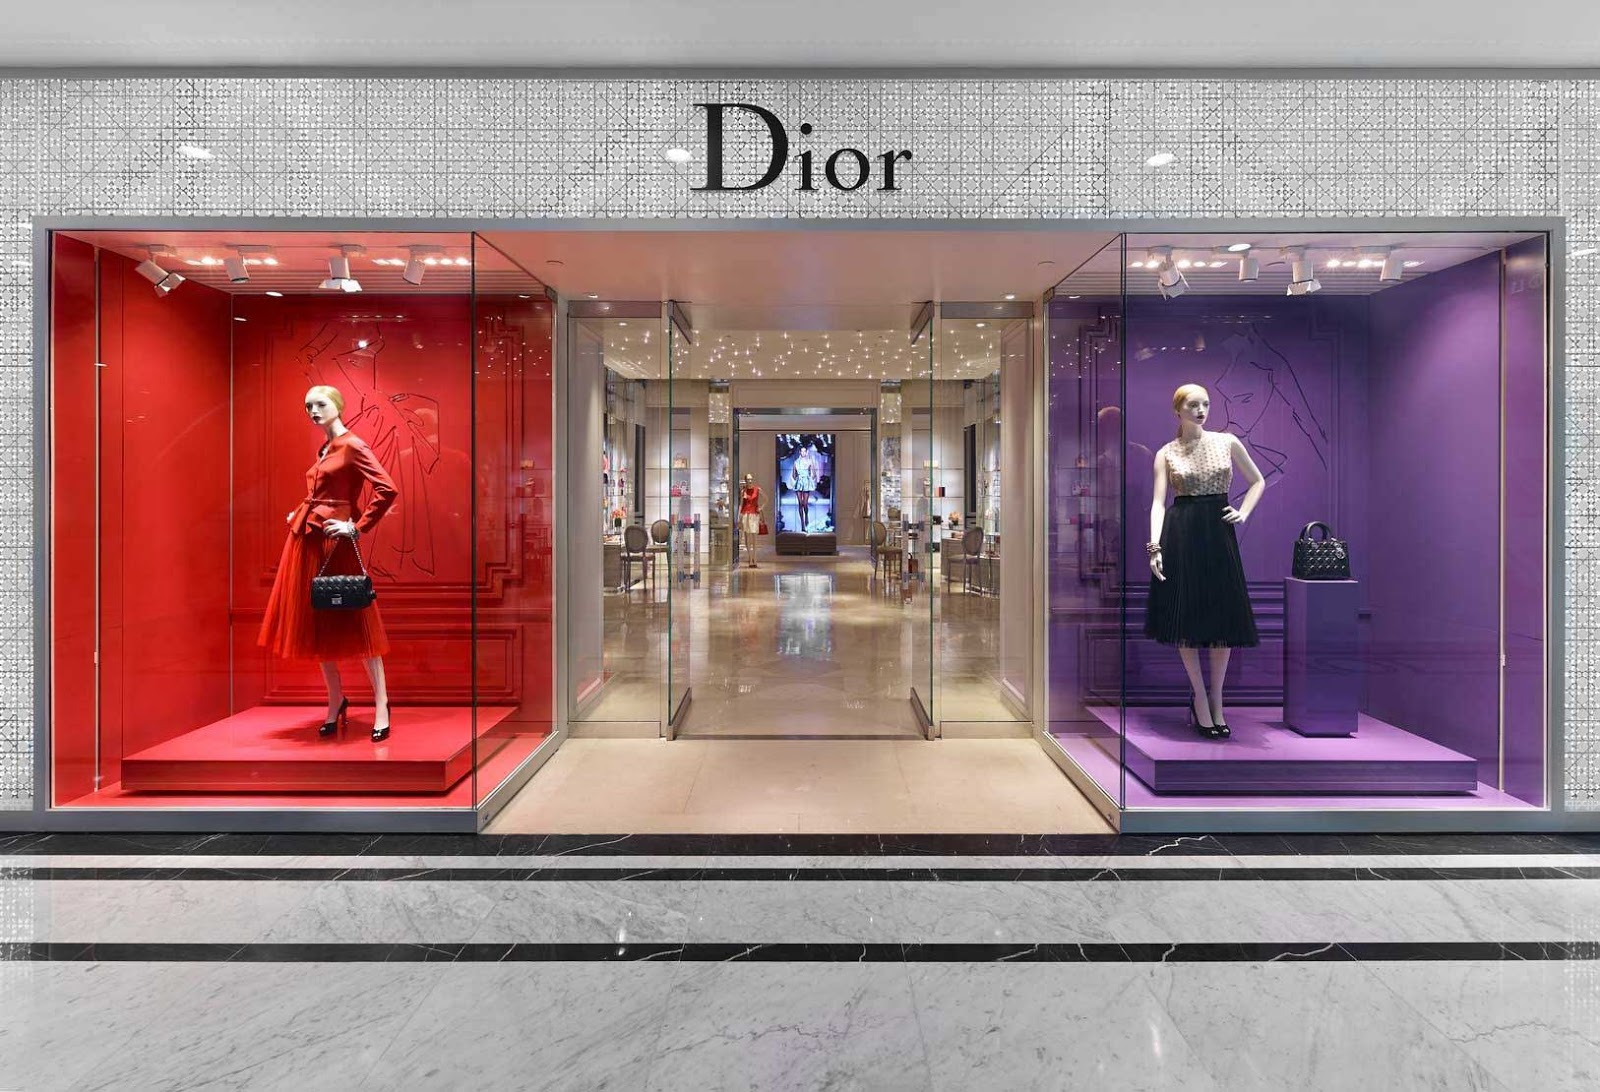 history brief company corporate french fashion brands luxury christian dior outlet stores shopping sell buy preloved items secondhand new latest old collections model men women fake original authentic 100% production manufacture types characteristics durable size color materials skin leather paris new york city nyc usa united states america founder owner